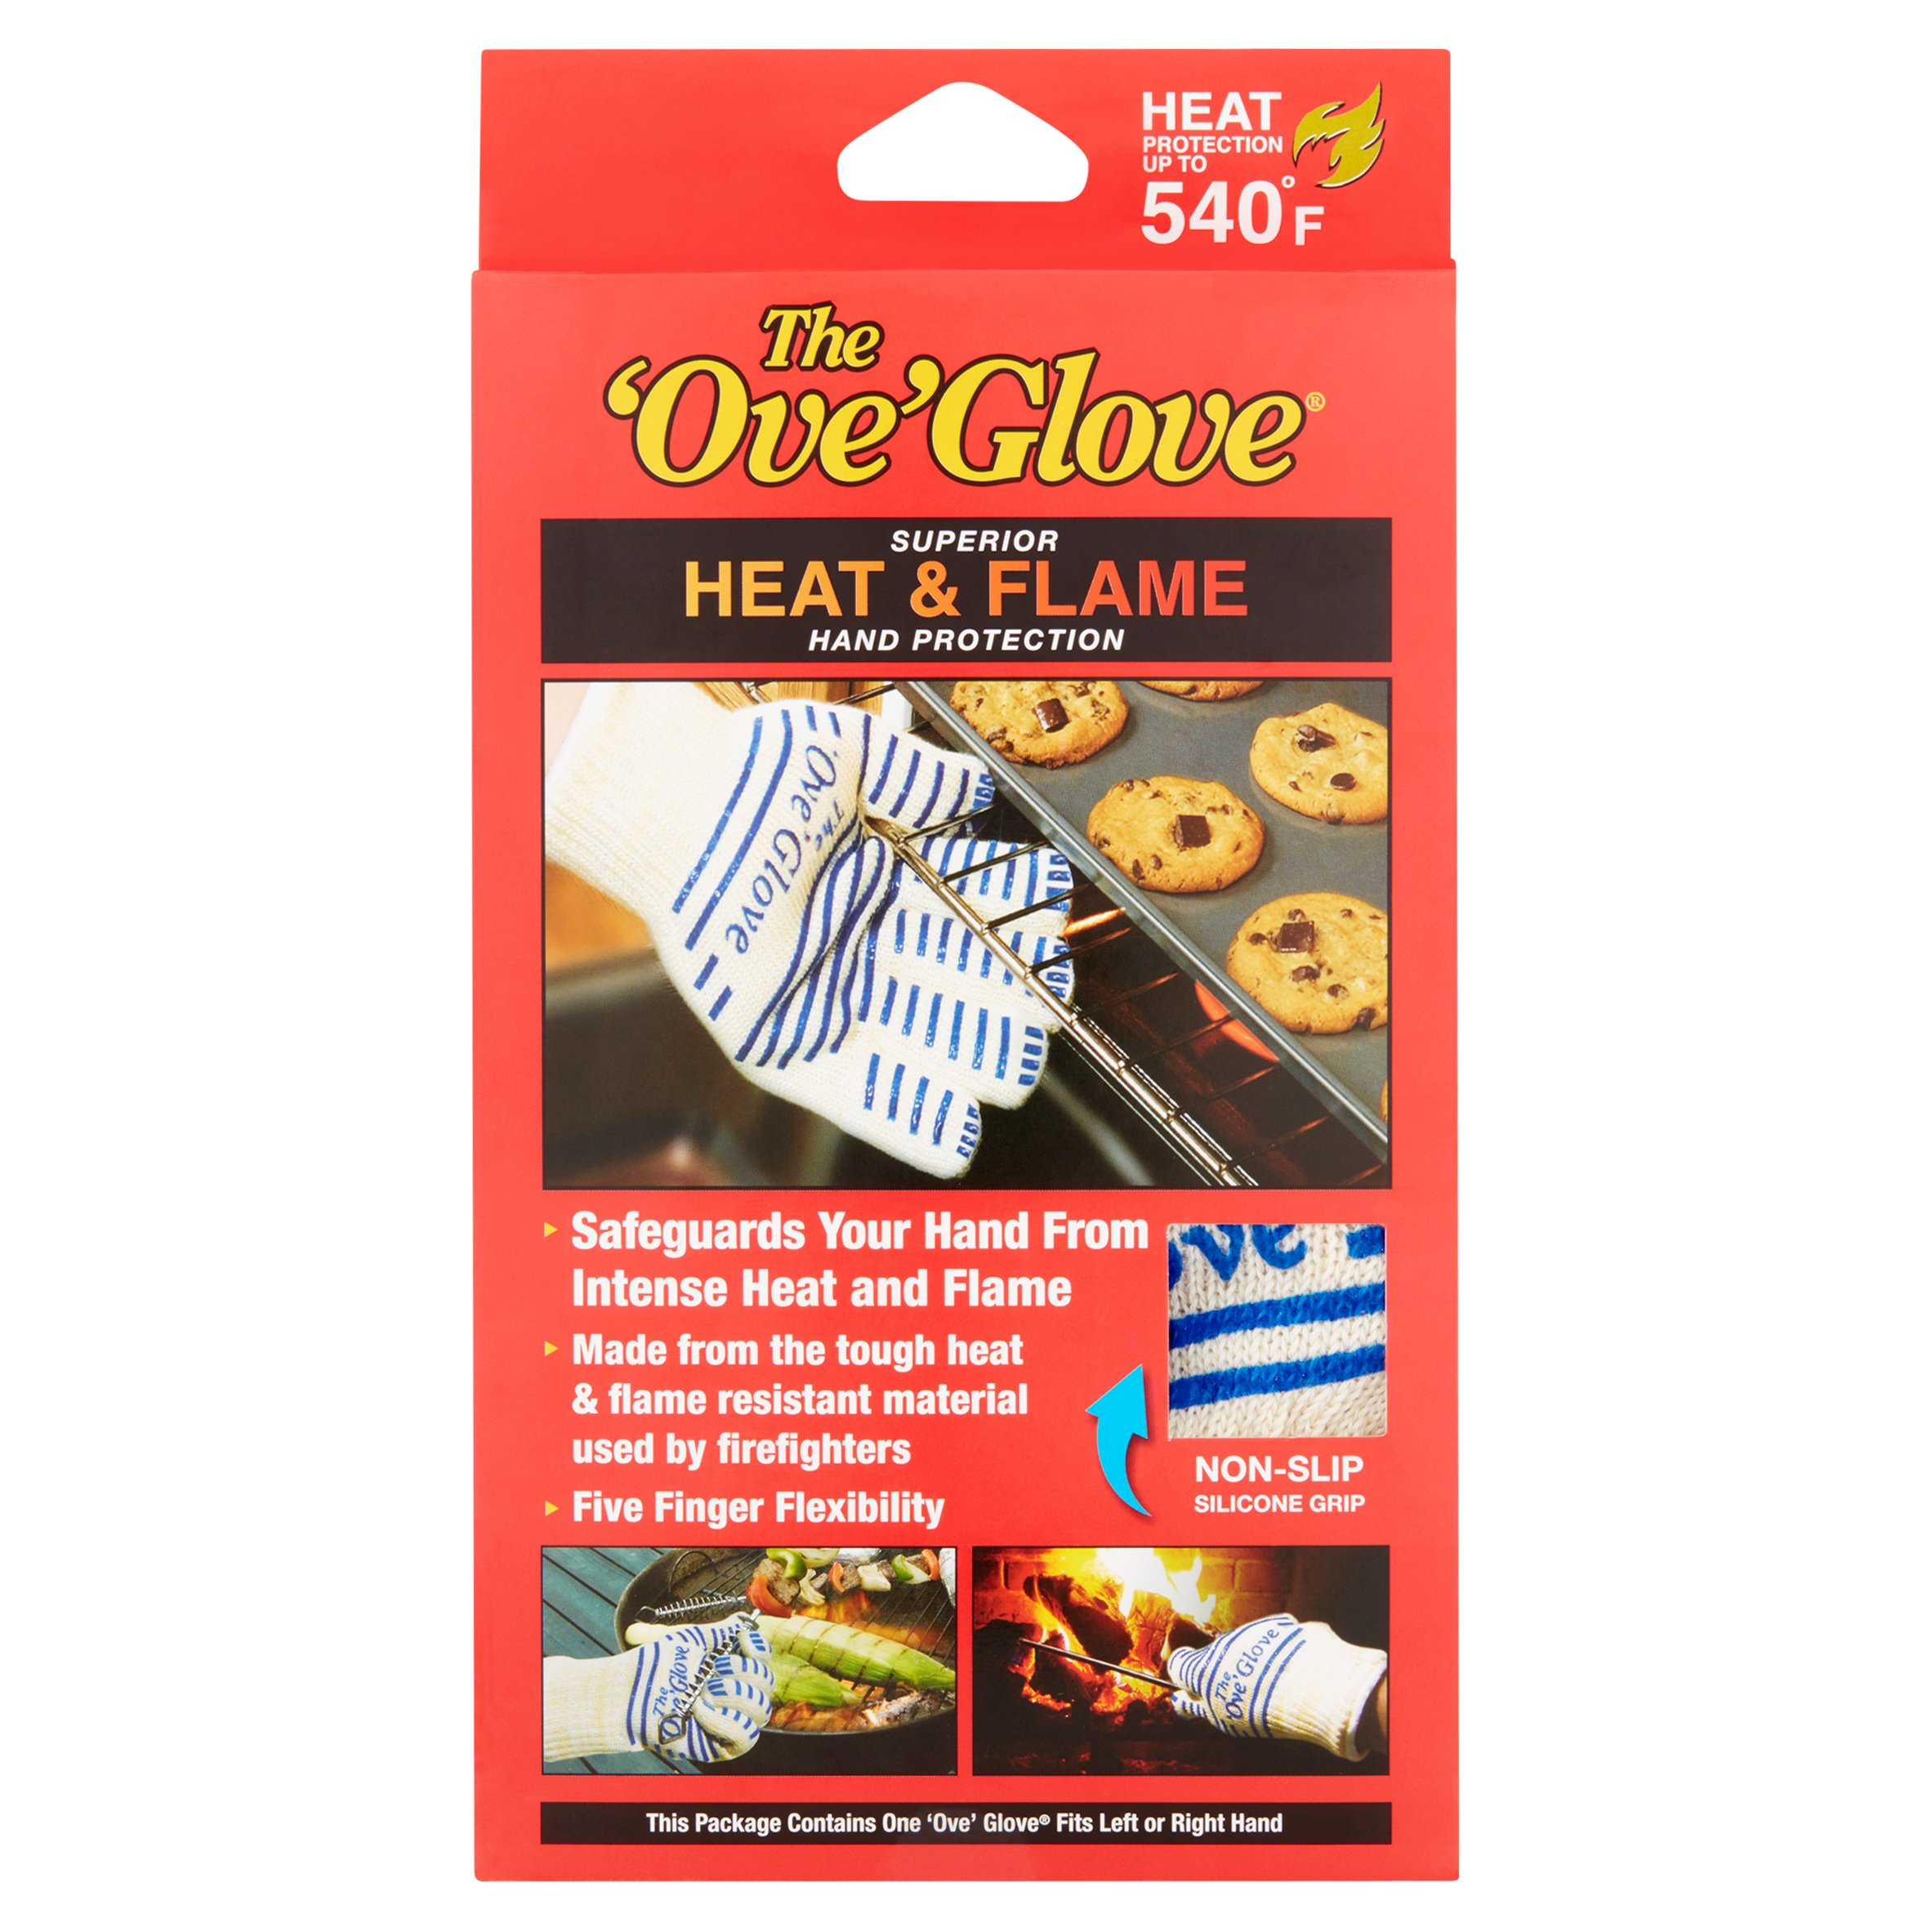 As Seen on TV Ove' Glove - Heat & Flame Superior Hand Protection